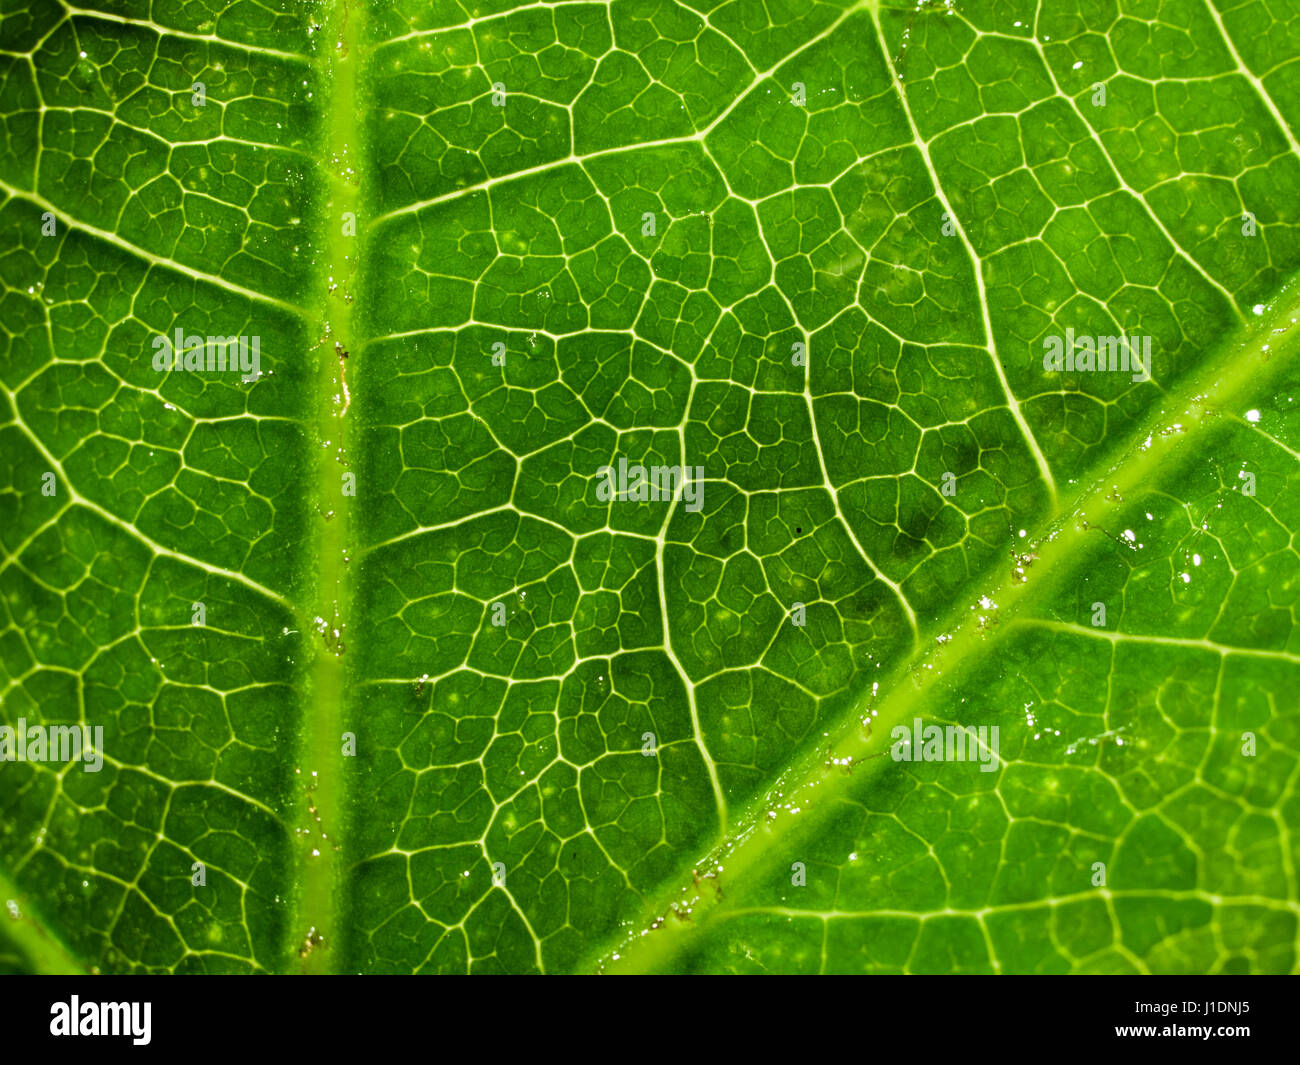 fatsia japonica leaf stockfotos fatsia japonica leaf bilder alamy. Black Bedroom Furniture Sets. Home Design Ideas